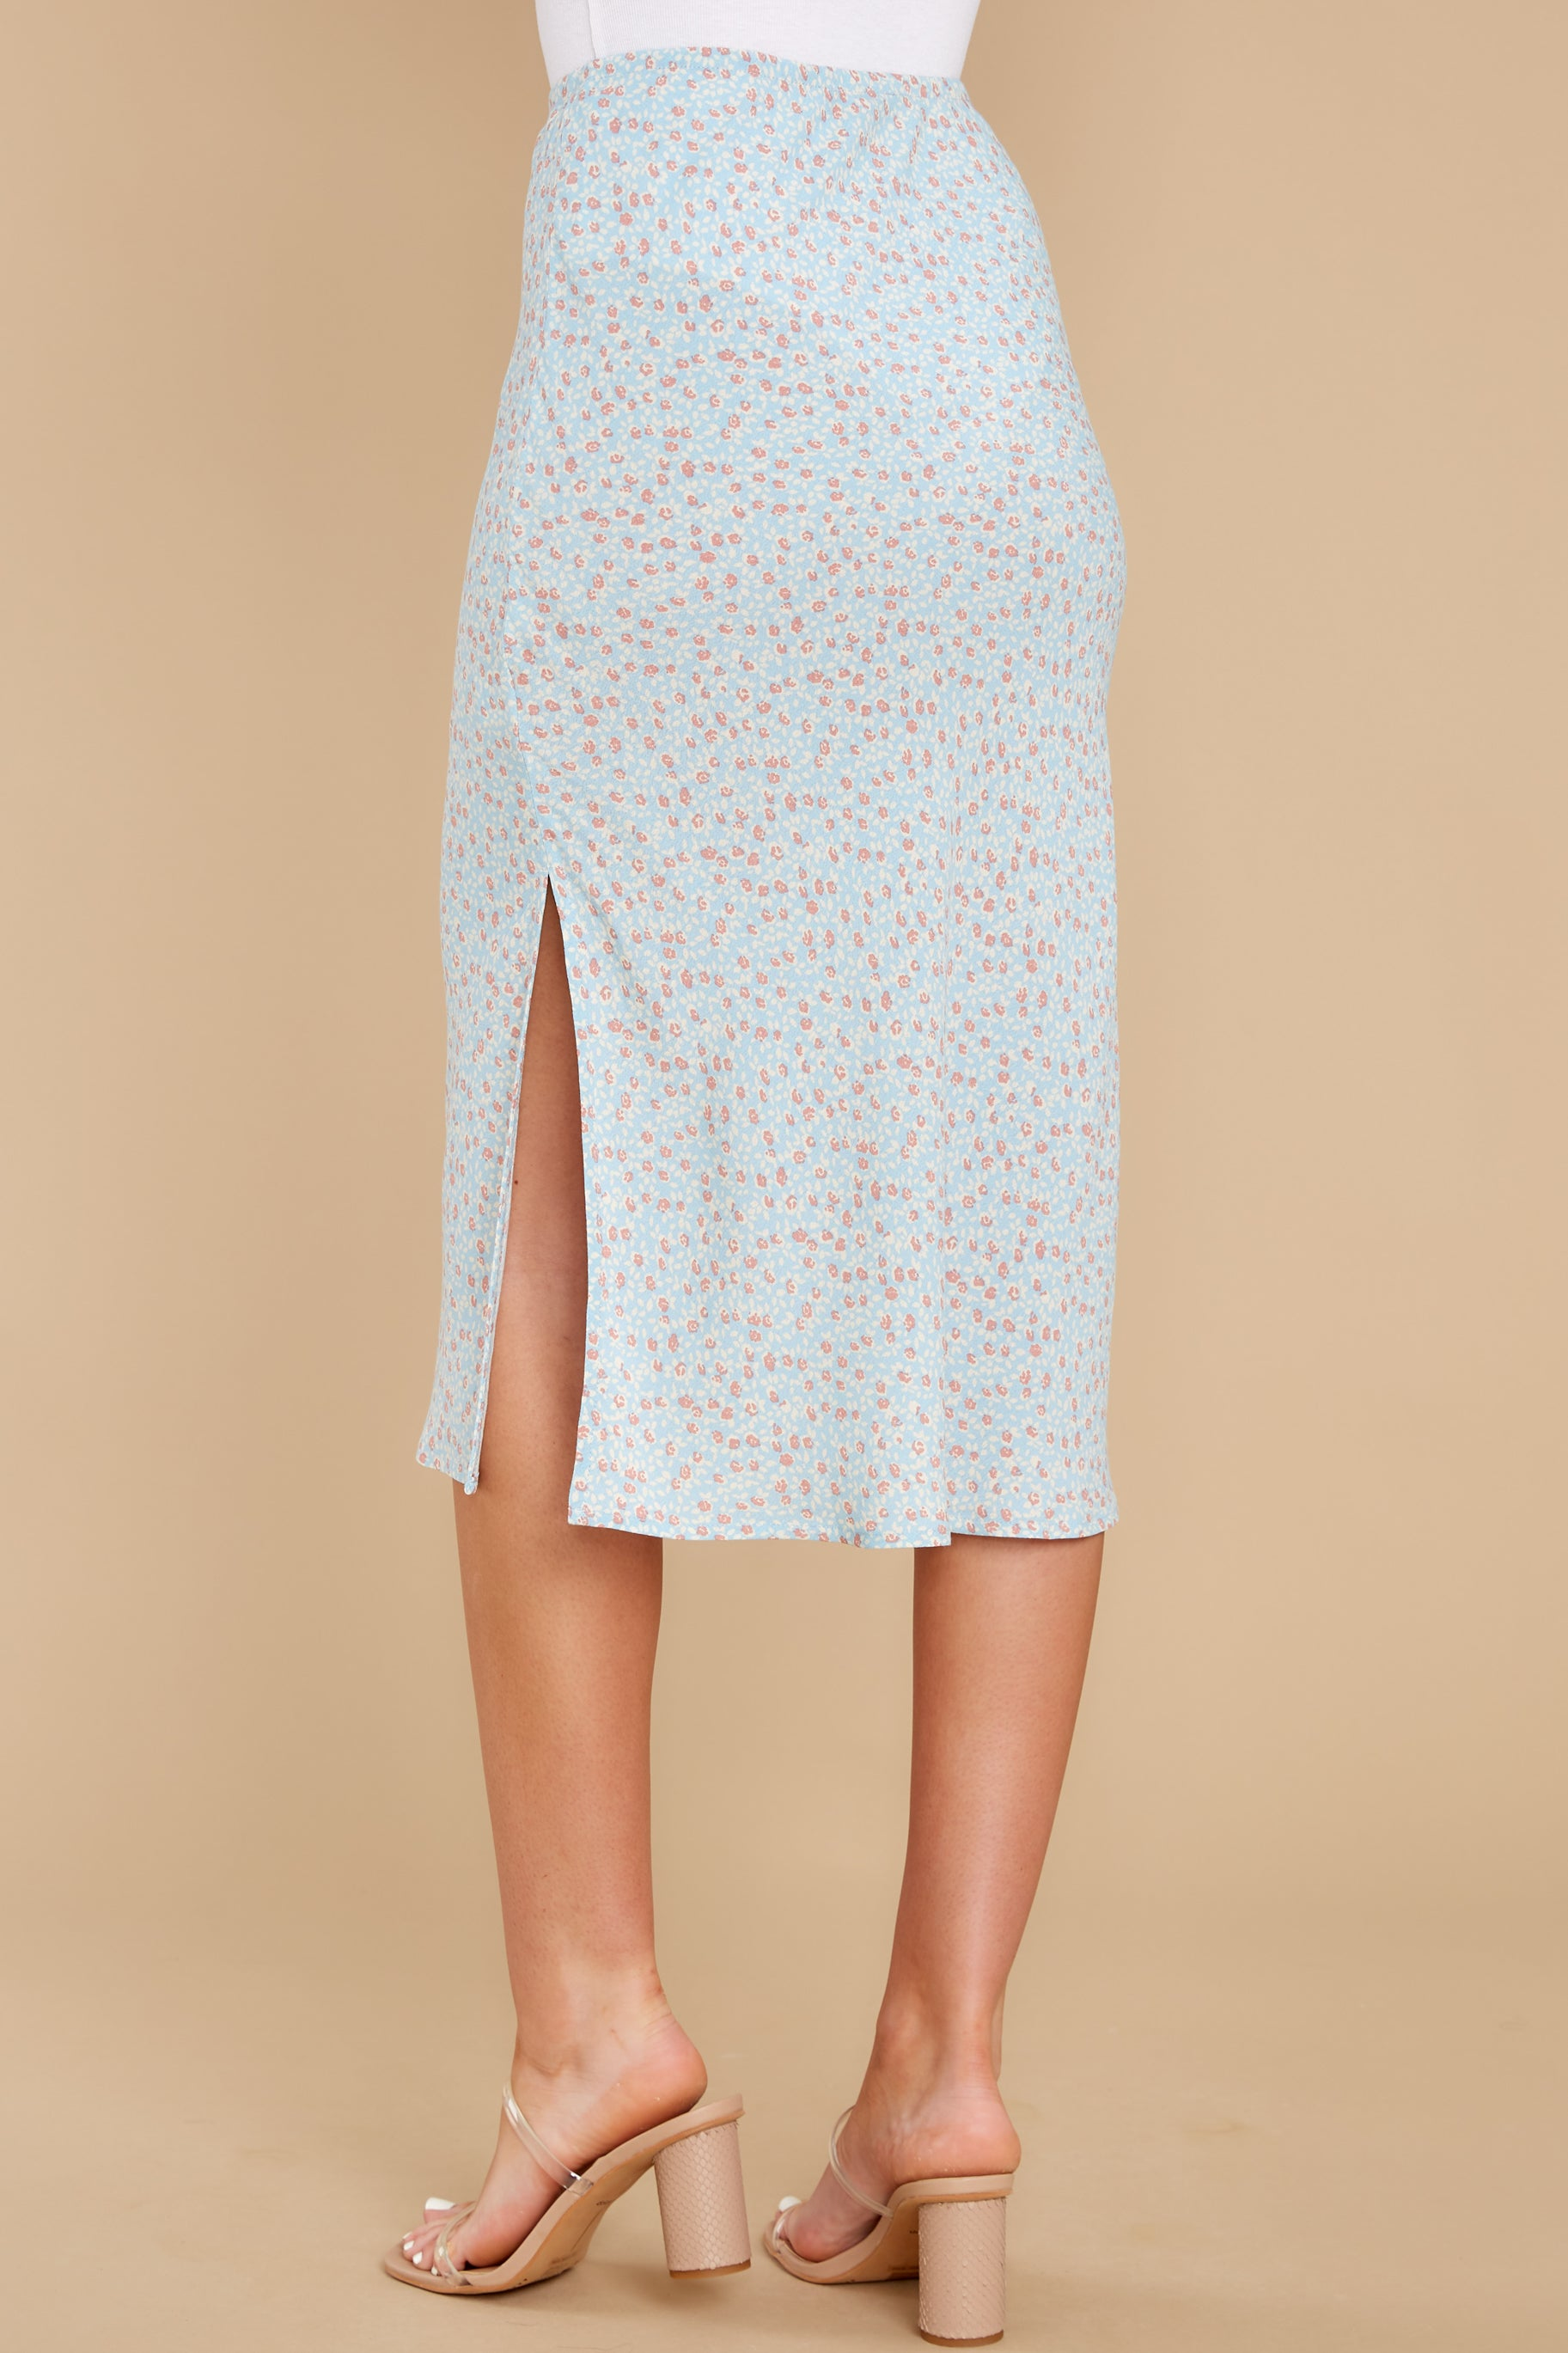 8 Adore It Sky Blue Floral Print Skirt at reddress.com